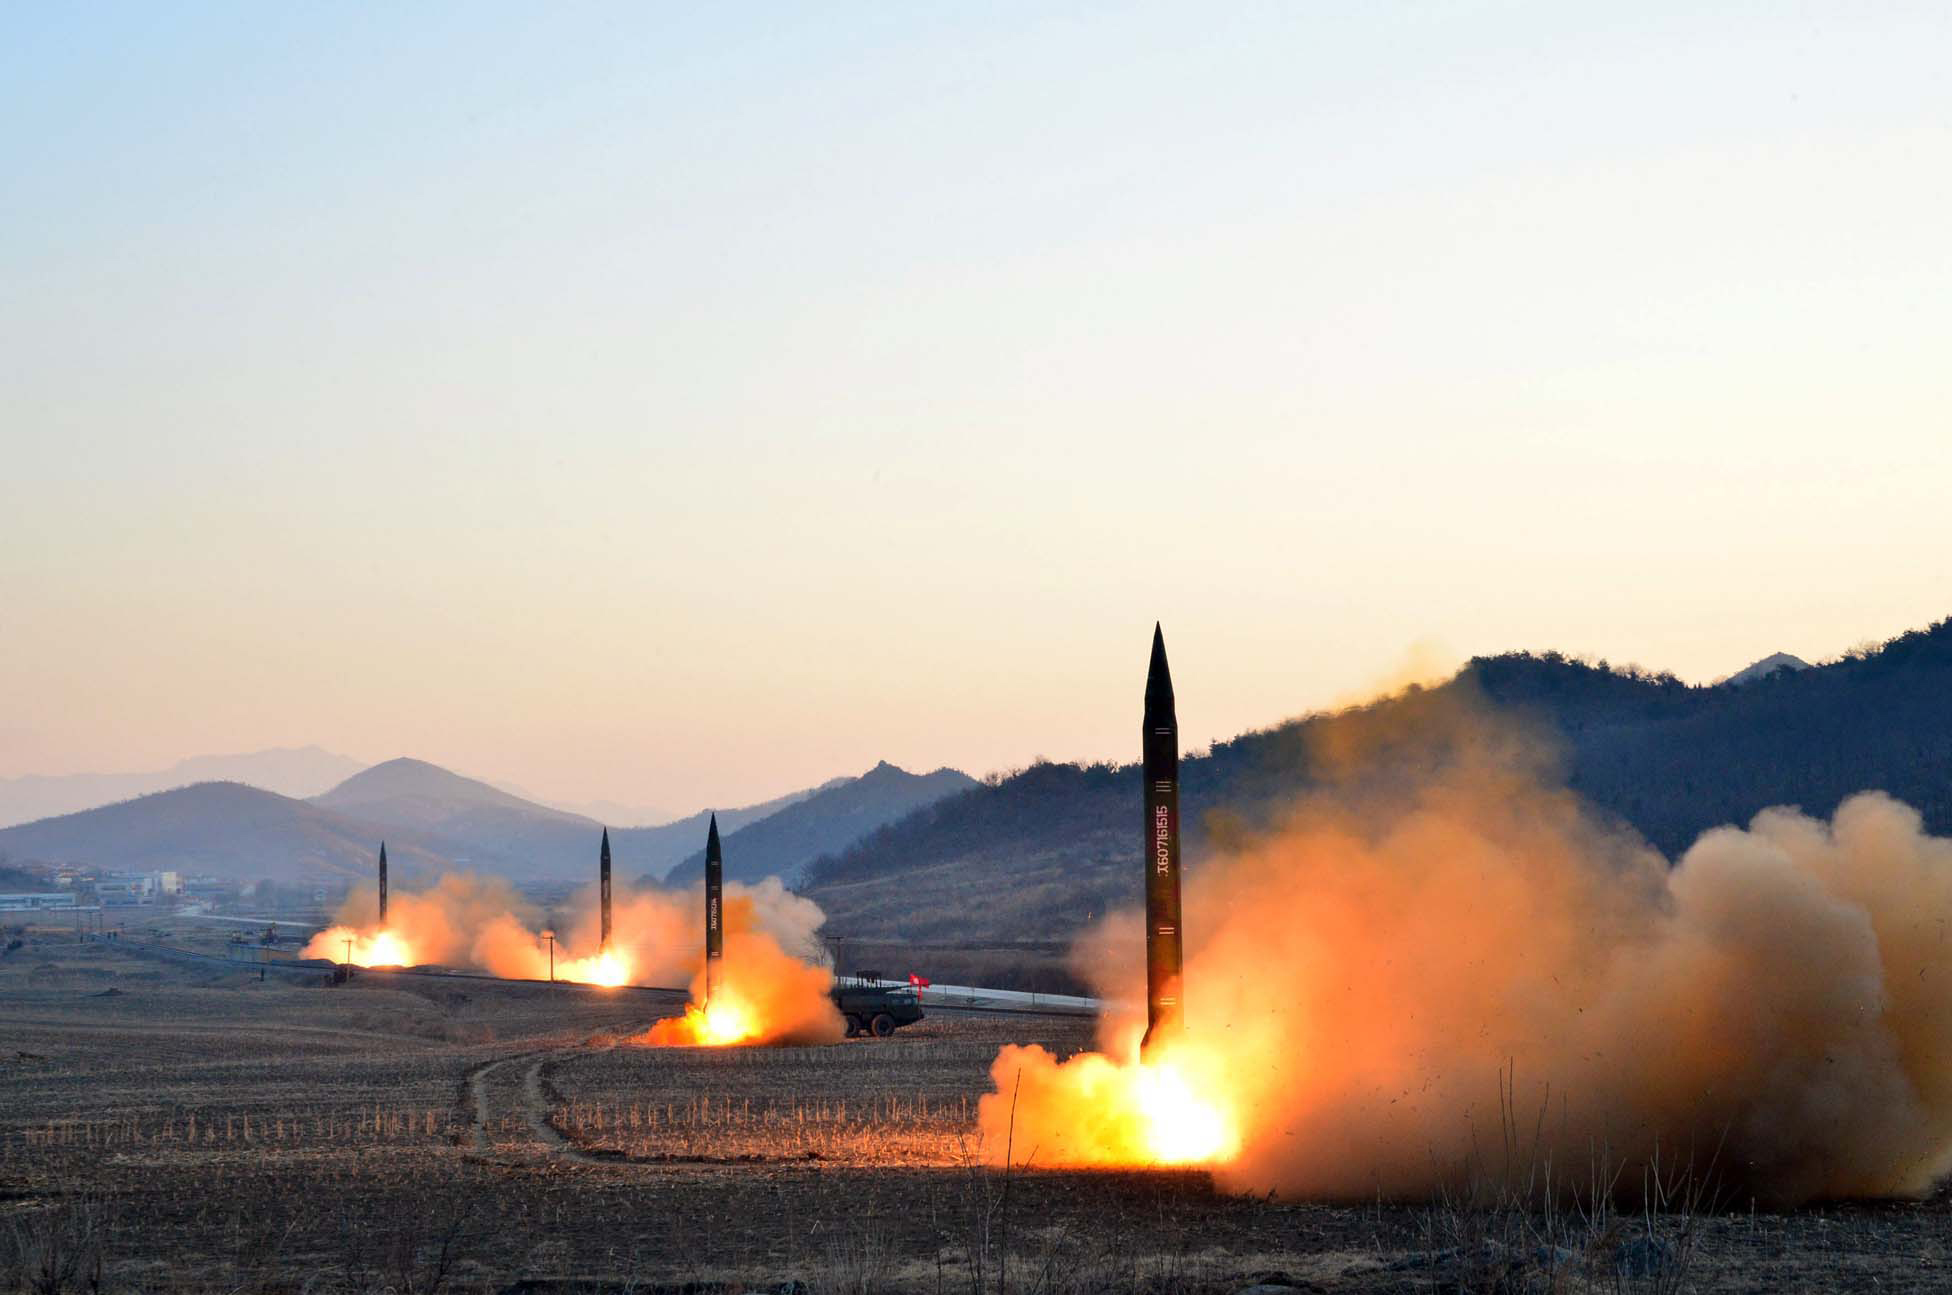 This undated picture released by North Korea's Korean Central News Agency (KCNA) via KNS on March 7, 2017 shows the launch of four ballistic missiles by the Korean People's Army (KPA).